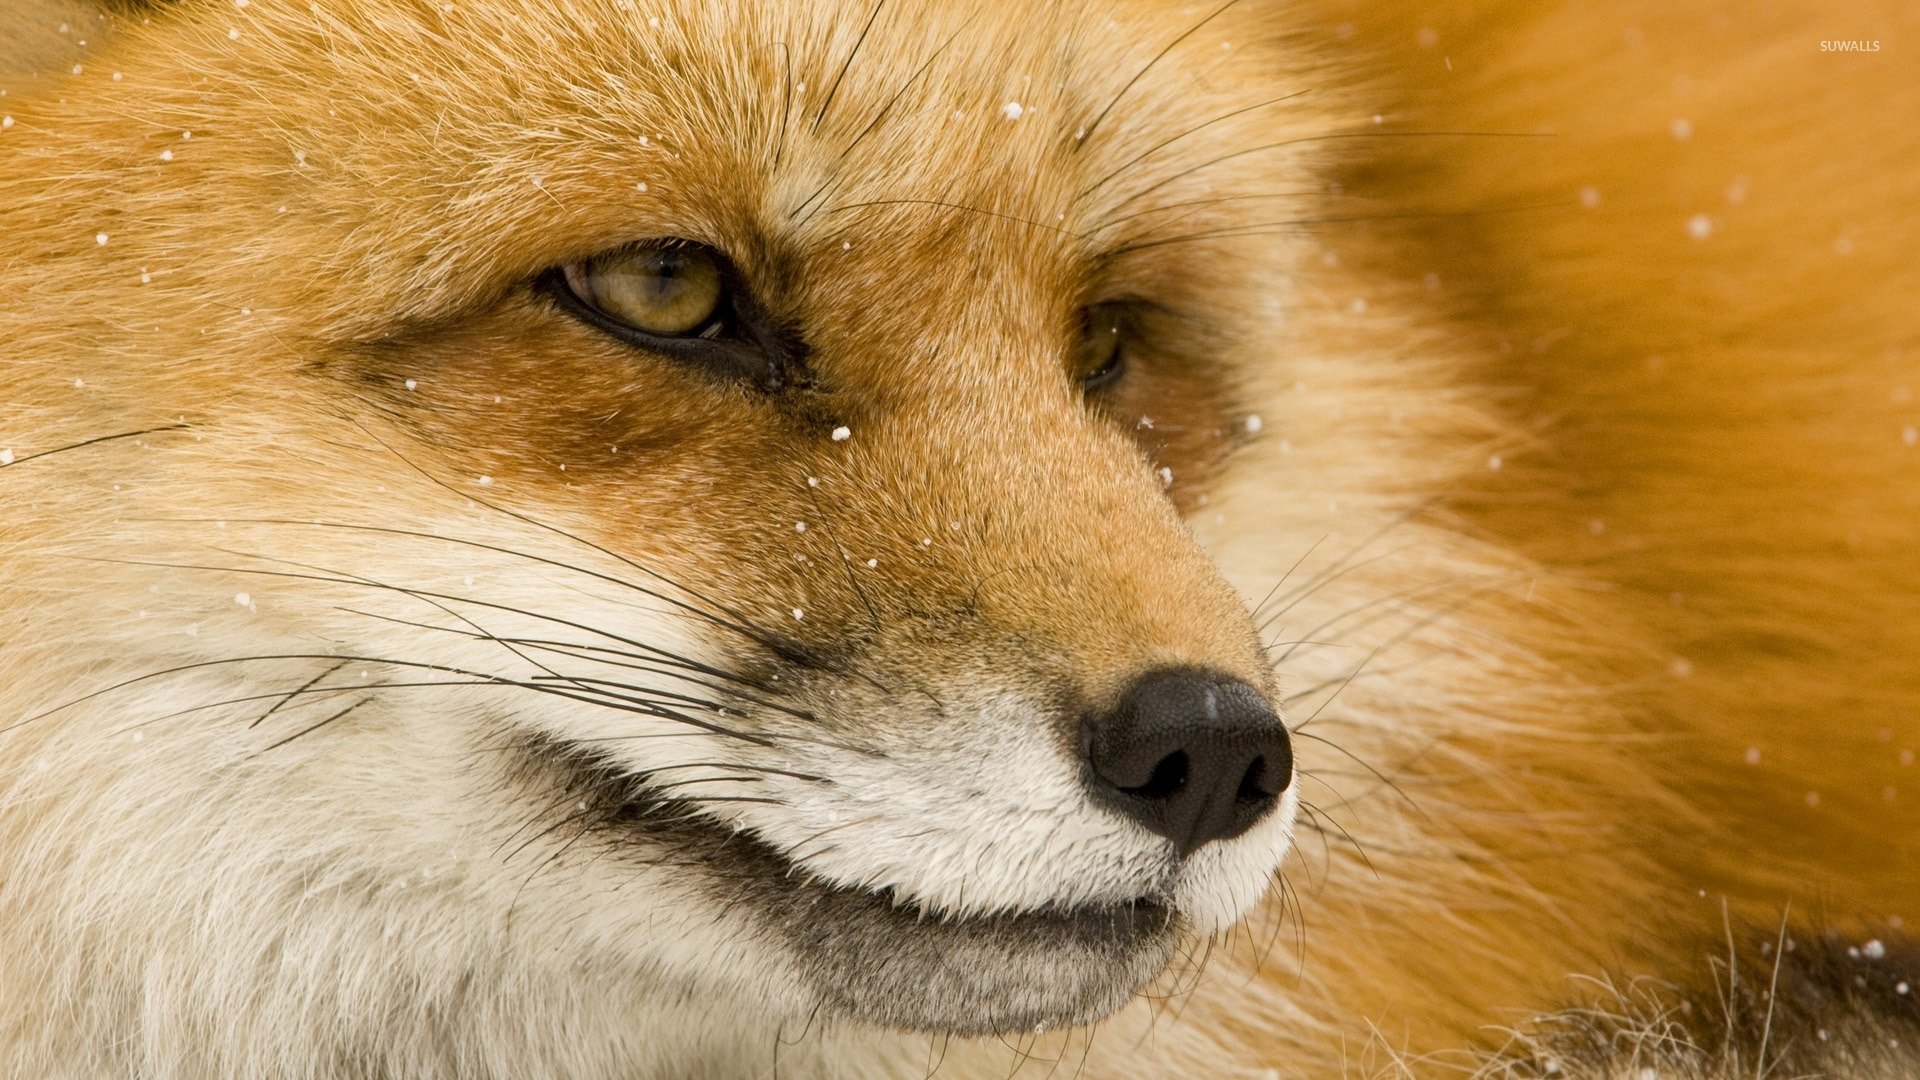 Fennec Fox Behaviour The Fennec Fox has uncharacteristic behaviours compared to other foxes While foxes are normally solitary creatures the Fennec Fox forms groups